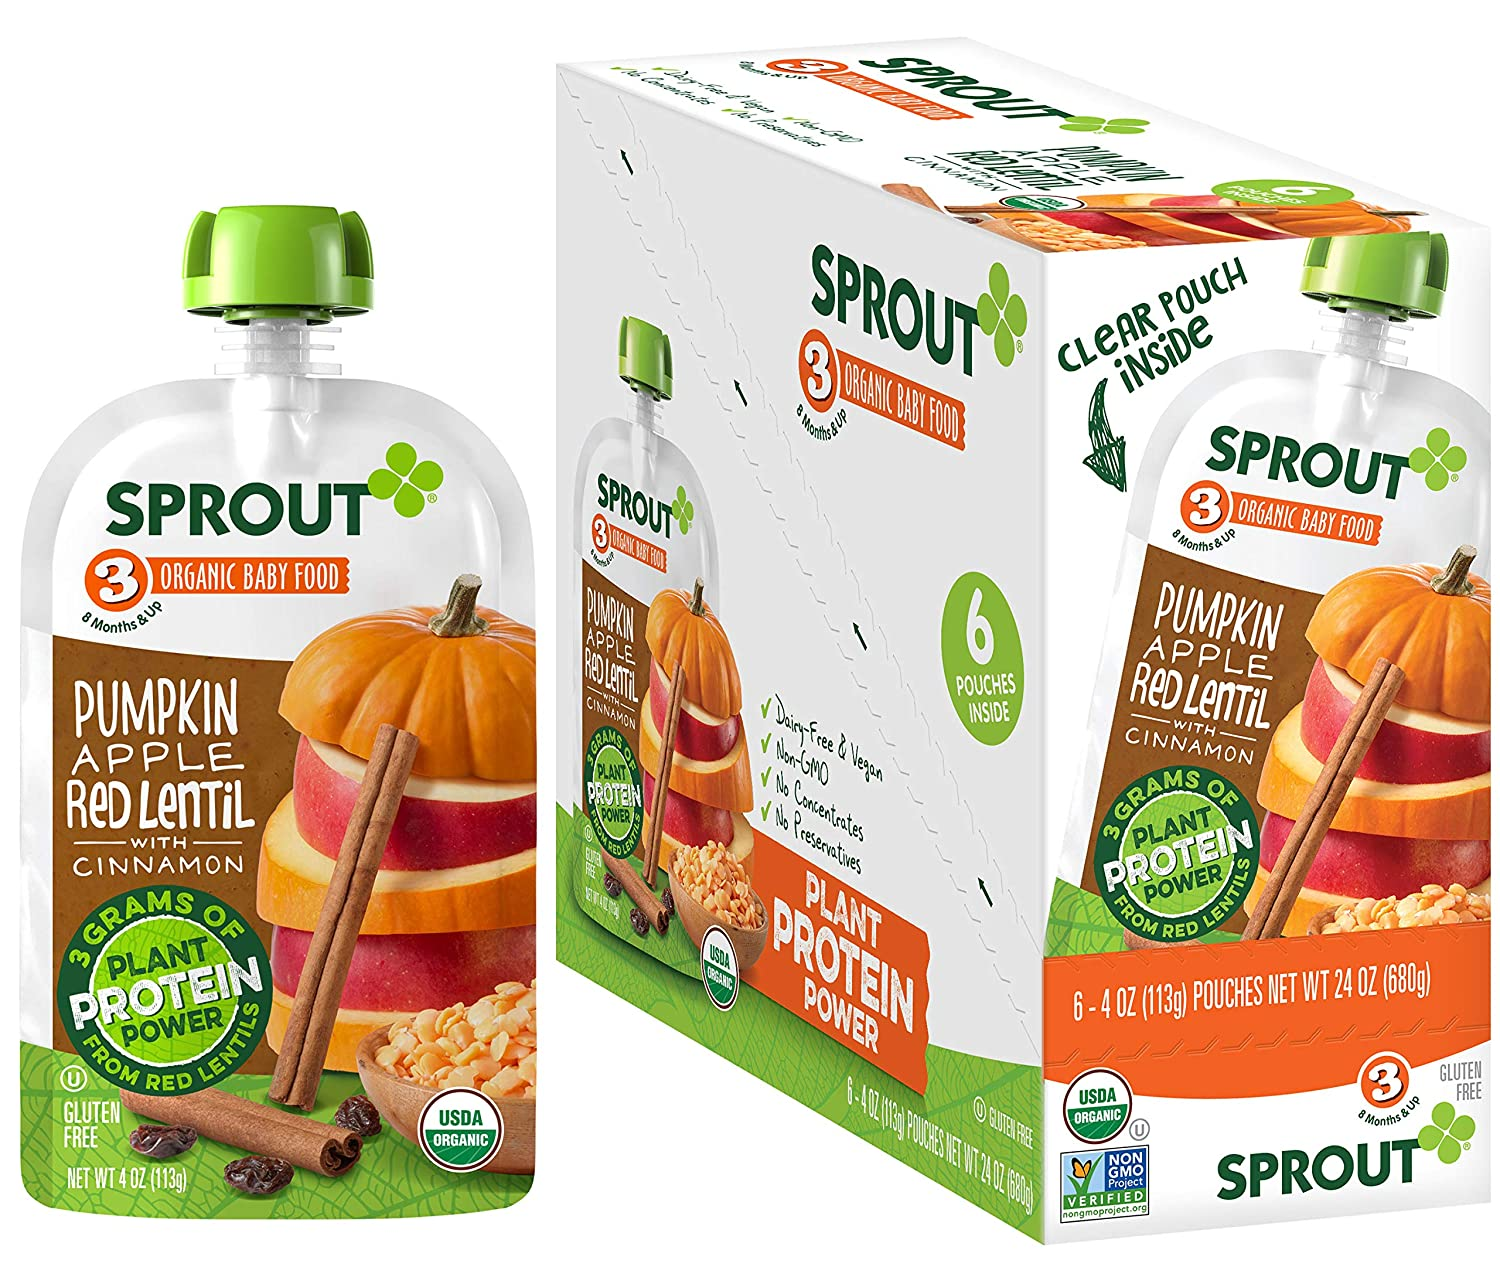 Sprout Organic Stage 3 Baby Food Pouches with Plant Powered Protein, Pumpkin Apple Red Lentil w/ Cinnamon, 4 Ounce (Pack of 6)